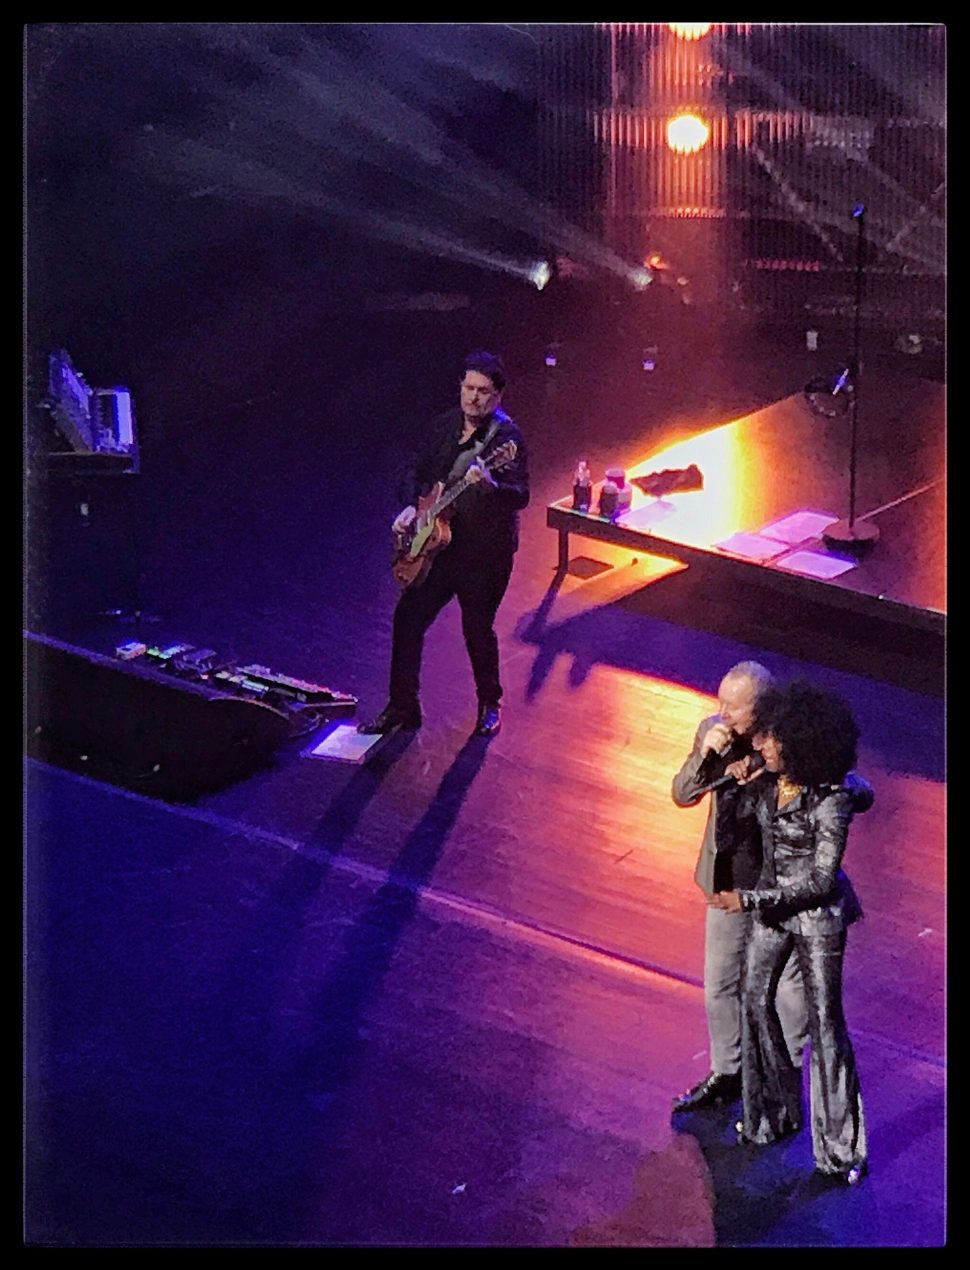 Charlie Burchill, Jim Kerr, and Sarah Brown of Simple Minds at Beacon Theatre. Photo by Rick Stachura. October 2, 2018.